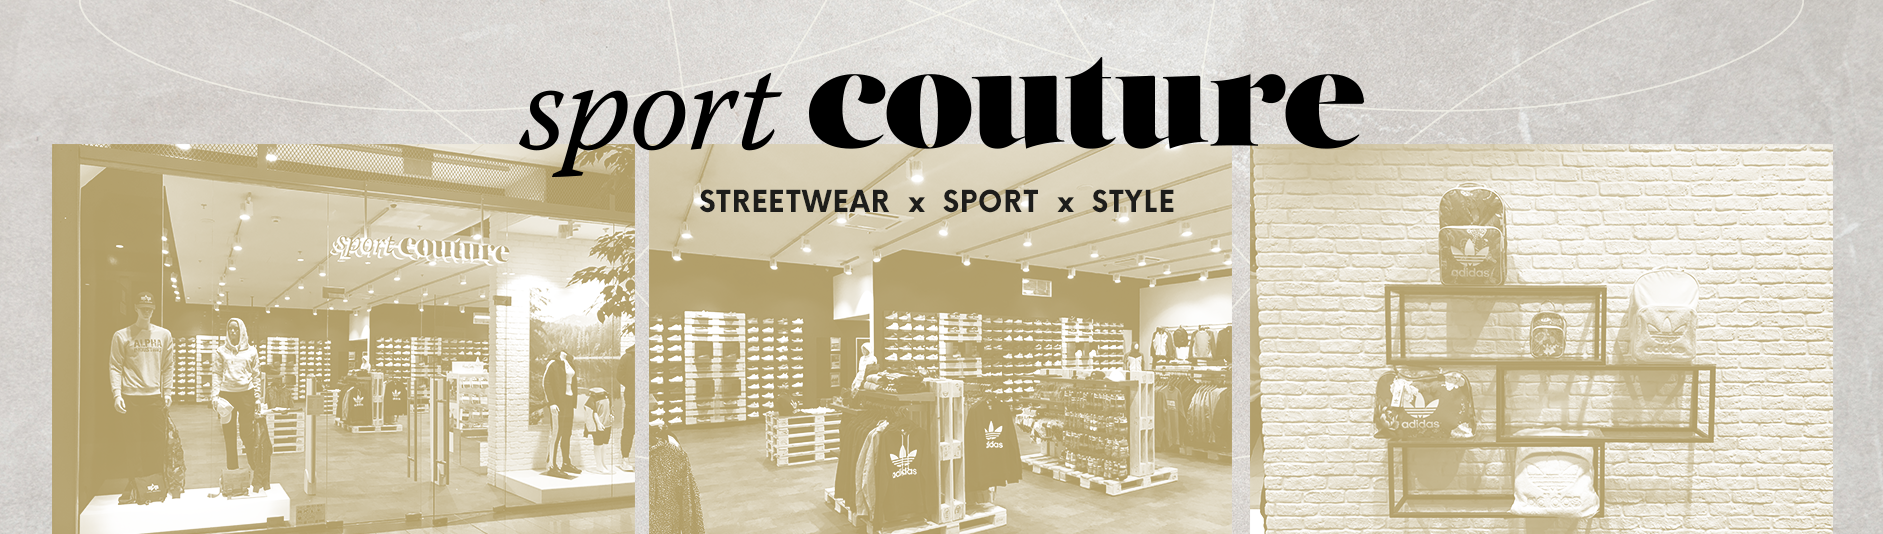 sportcouture-banner-1883x534.png (1883×534)